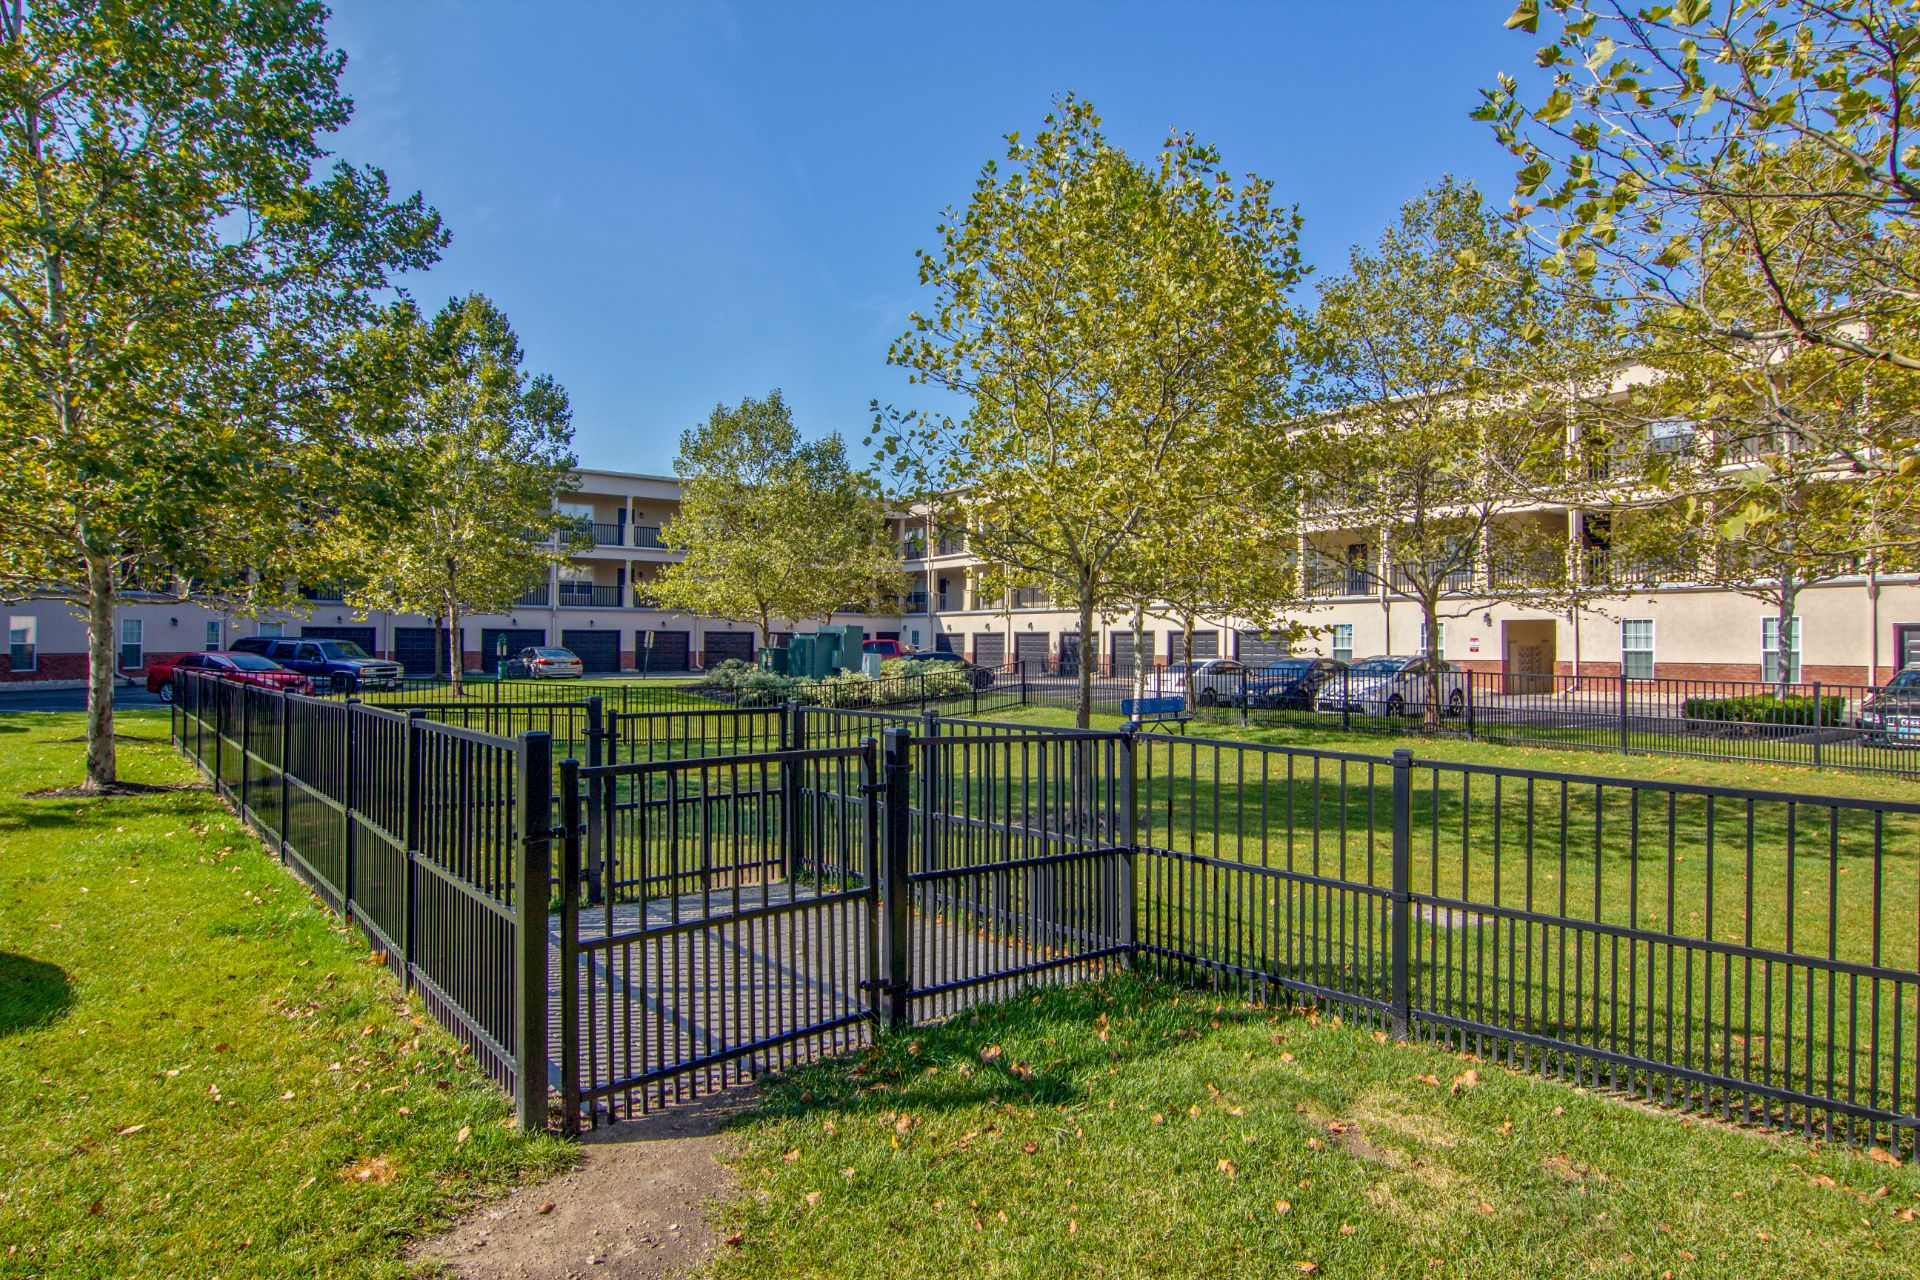 Pet Friendly Apartments and Townhomes with Dog Park Easton Commons 4011 Easton Way Columbus OH 43219